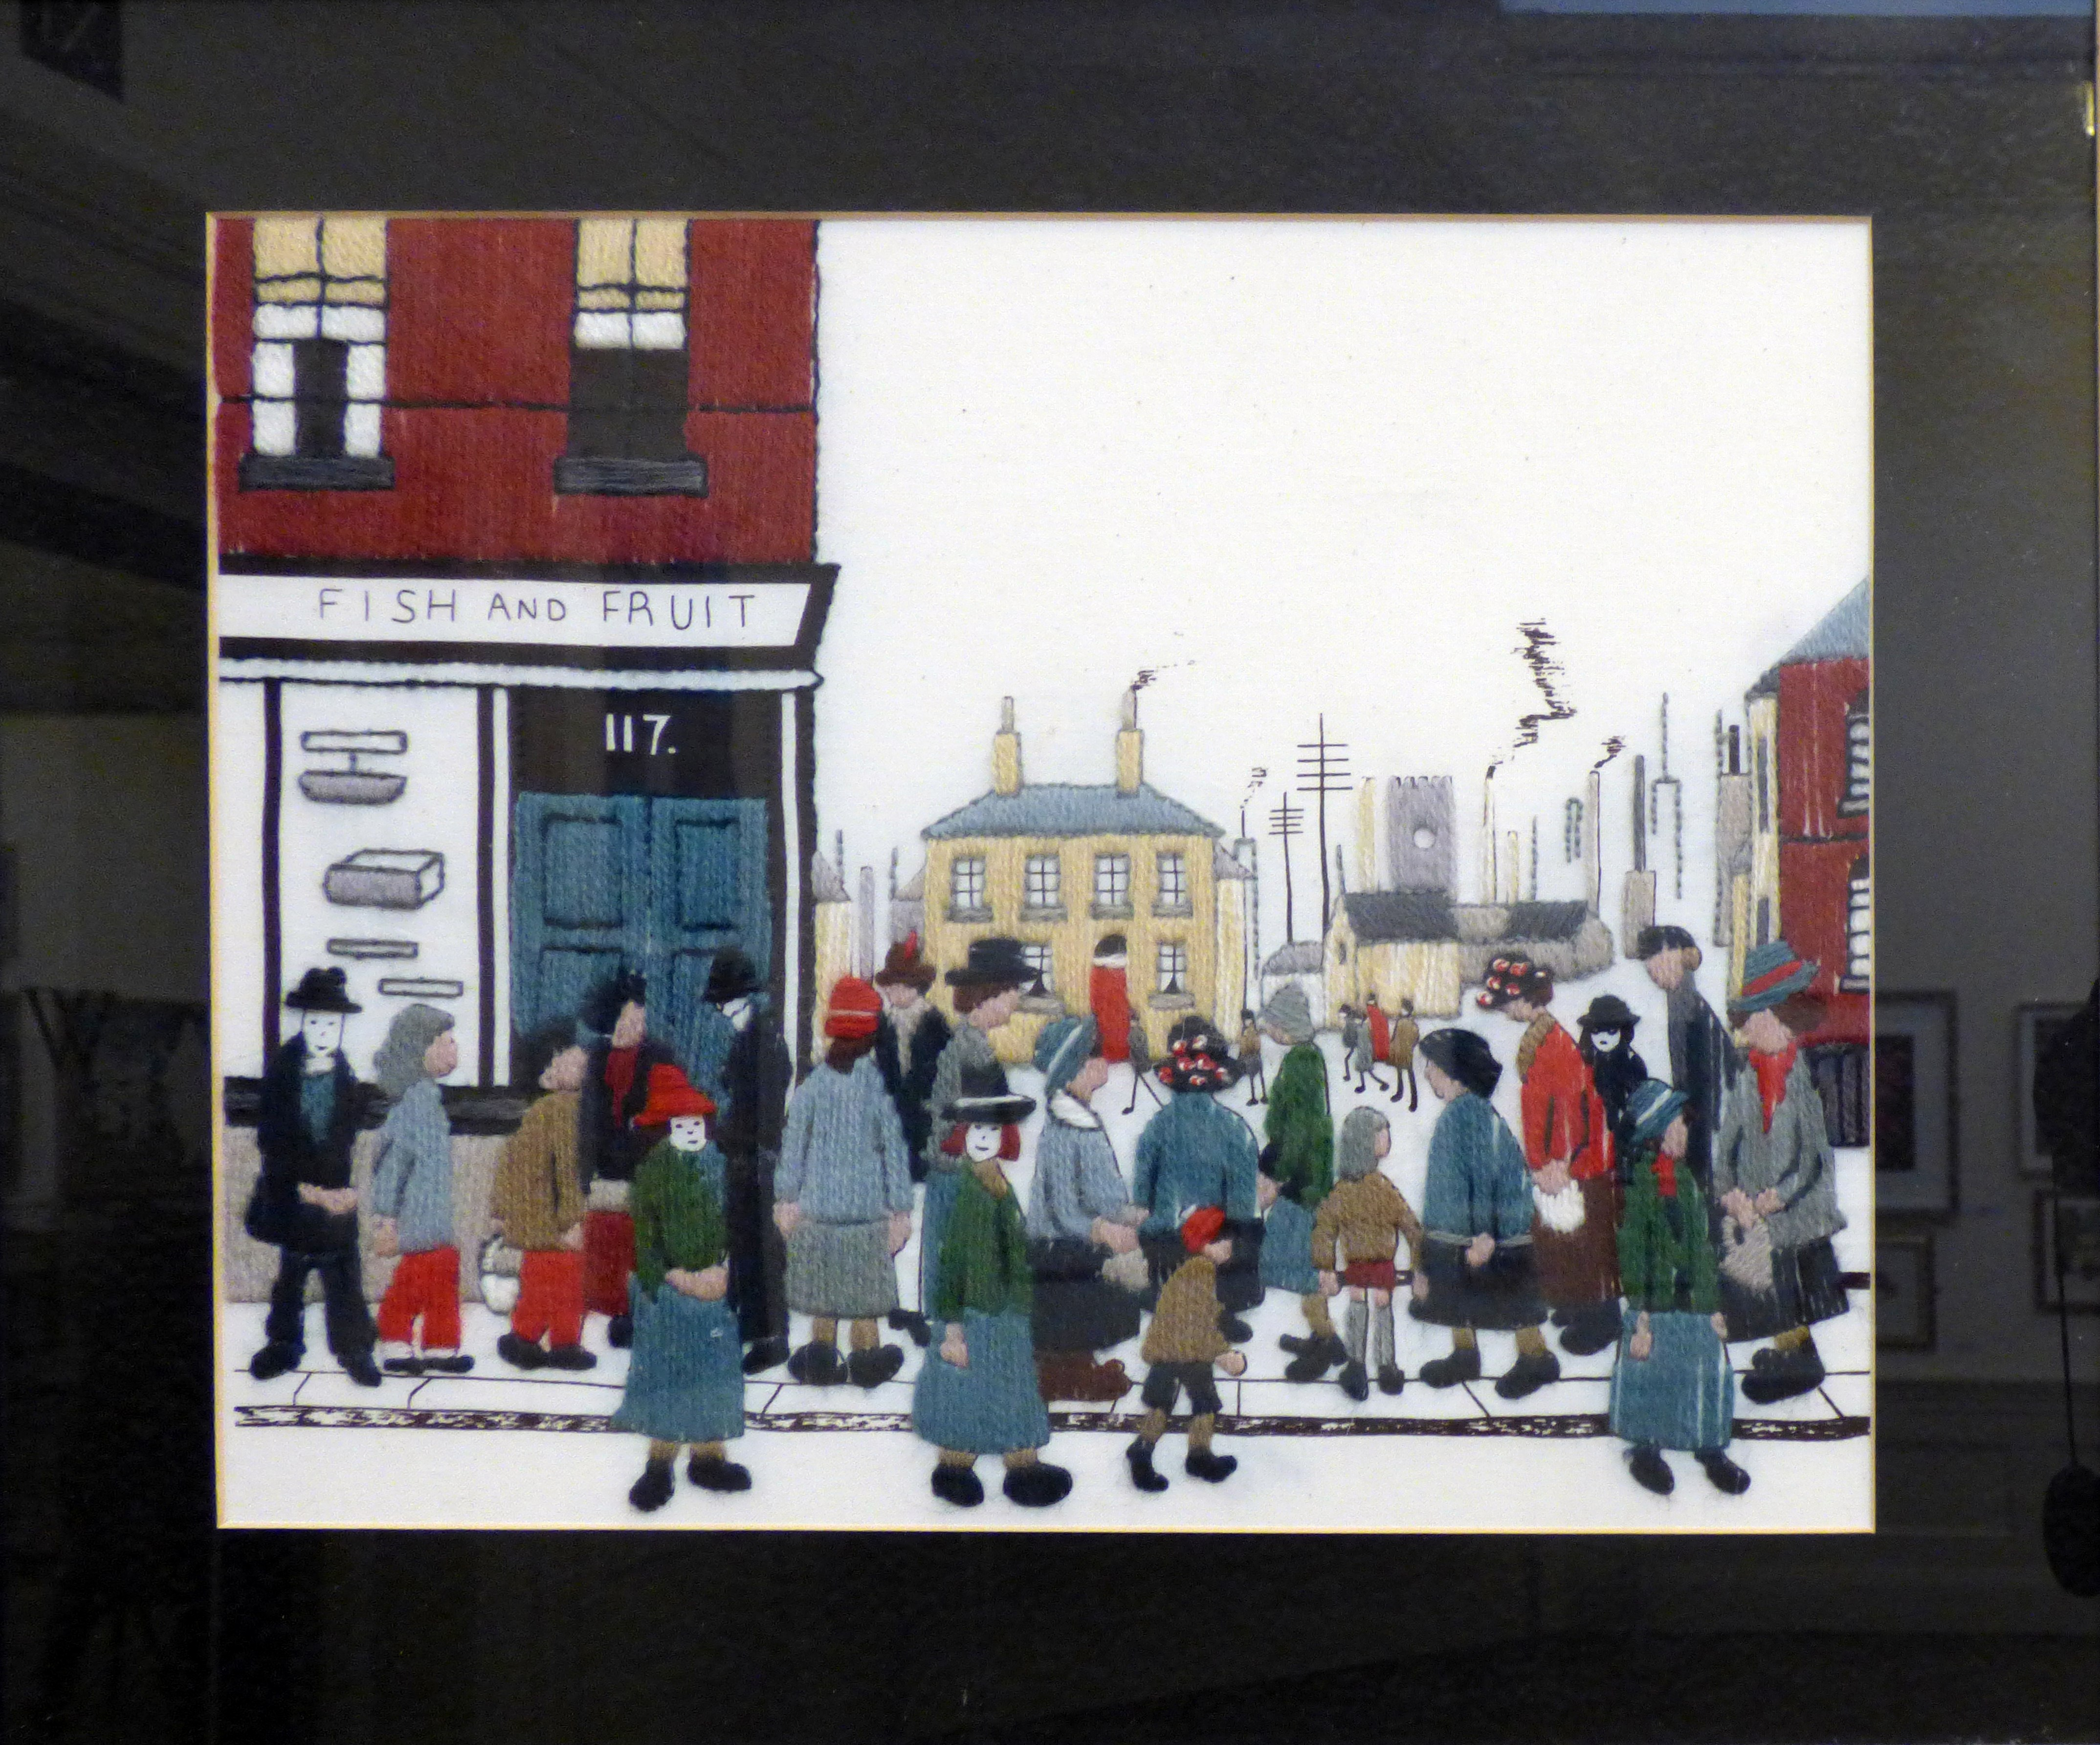 LOWRY-THE SHOP by Jill Renwick, long and short stitch